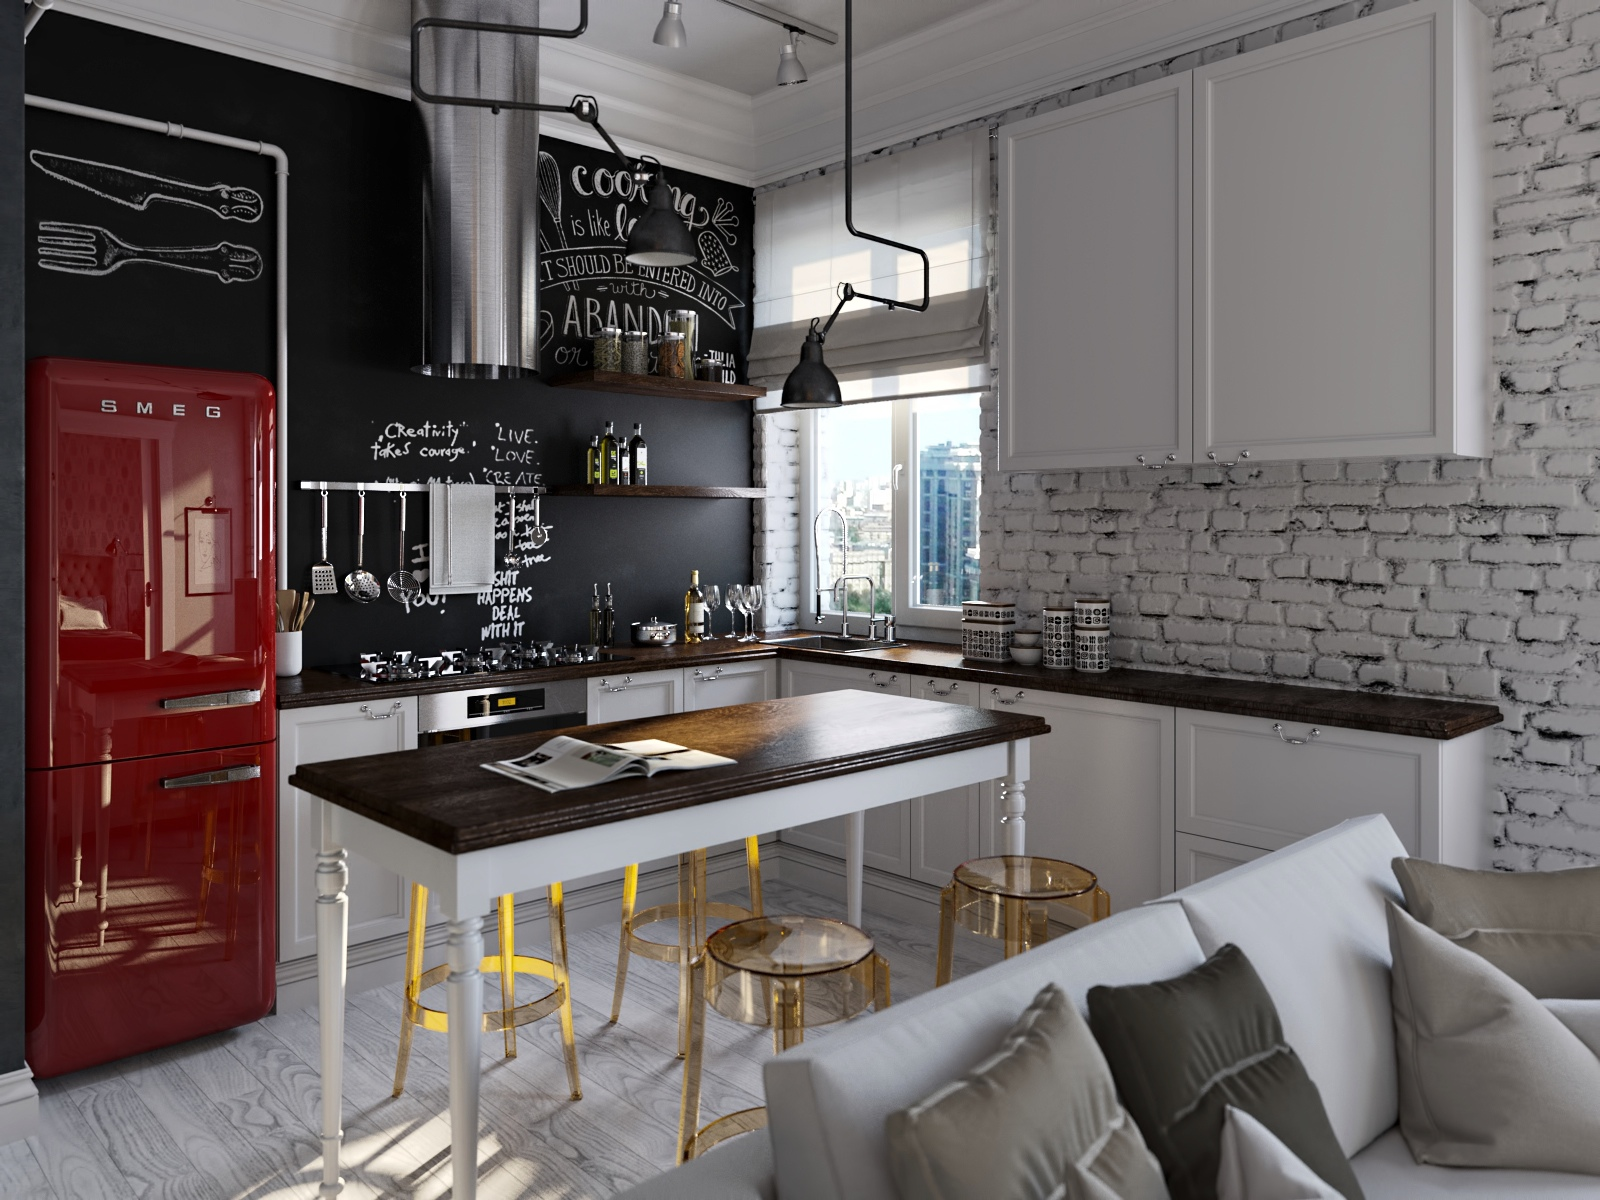 Red smeg fridge interior design ideas for Design im shop